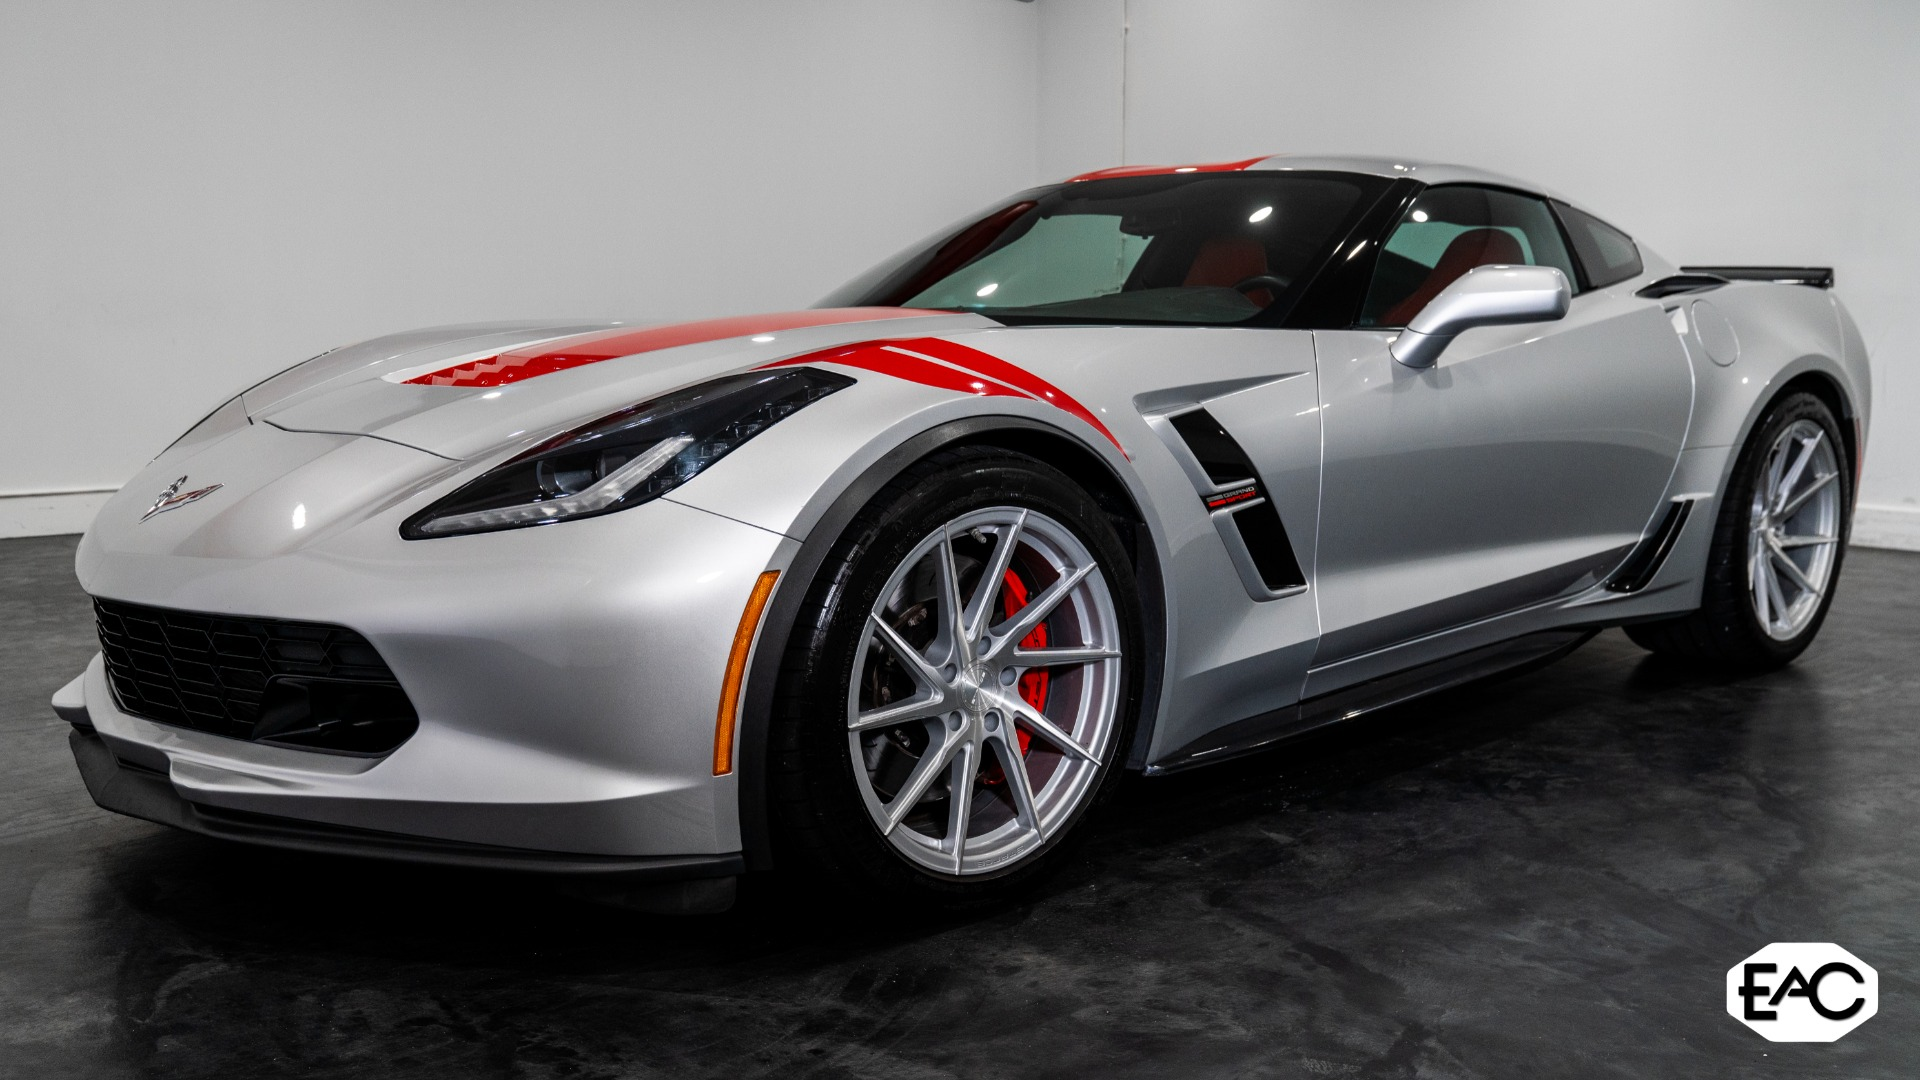 Used 2017 Chevrolet Corvette Grand Sport for sale Sold at Empire Auto Collection in Warren MI 48091 1